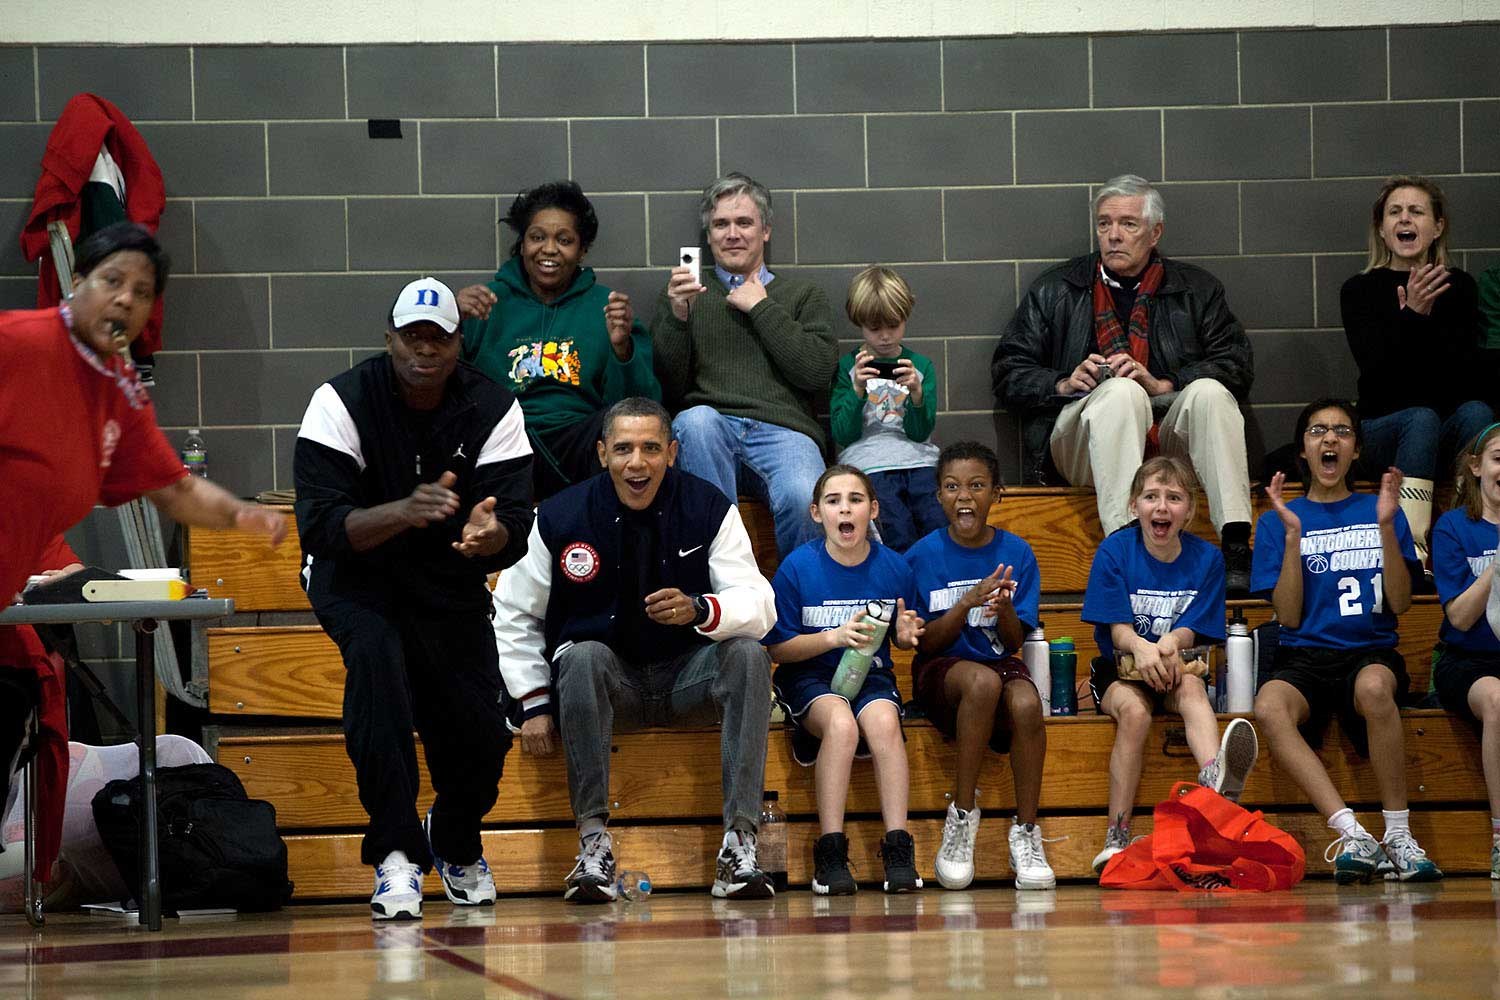 The two coaches for Sasha Obama's basketball team couldn't make it to one of her games, so the President and his then personal aide, Reggie Love, filled in as coaches for this game on Saturday, Feb. 5, 2011. Here they along with Sasha's teammates react during the game.